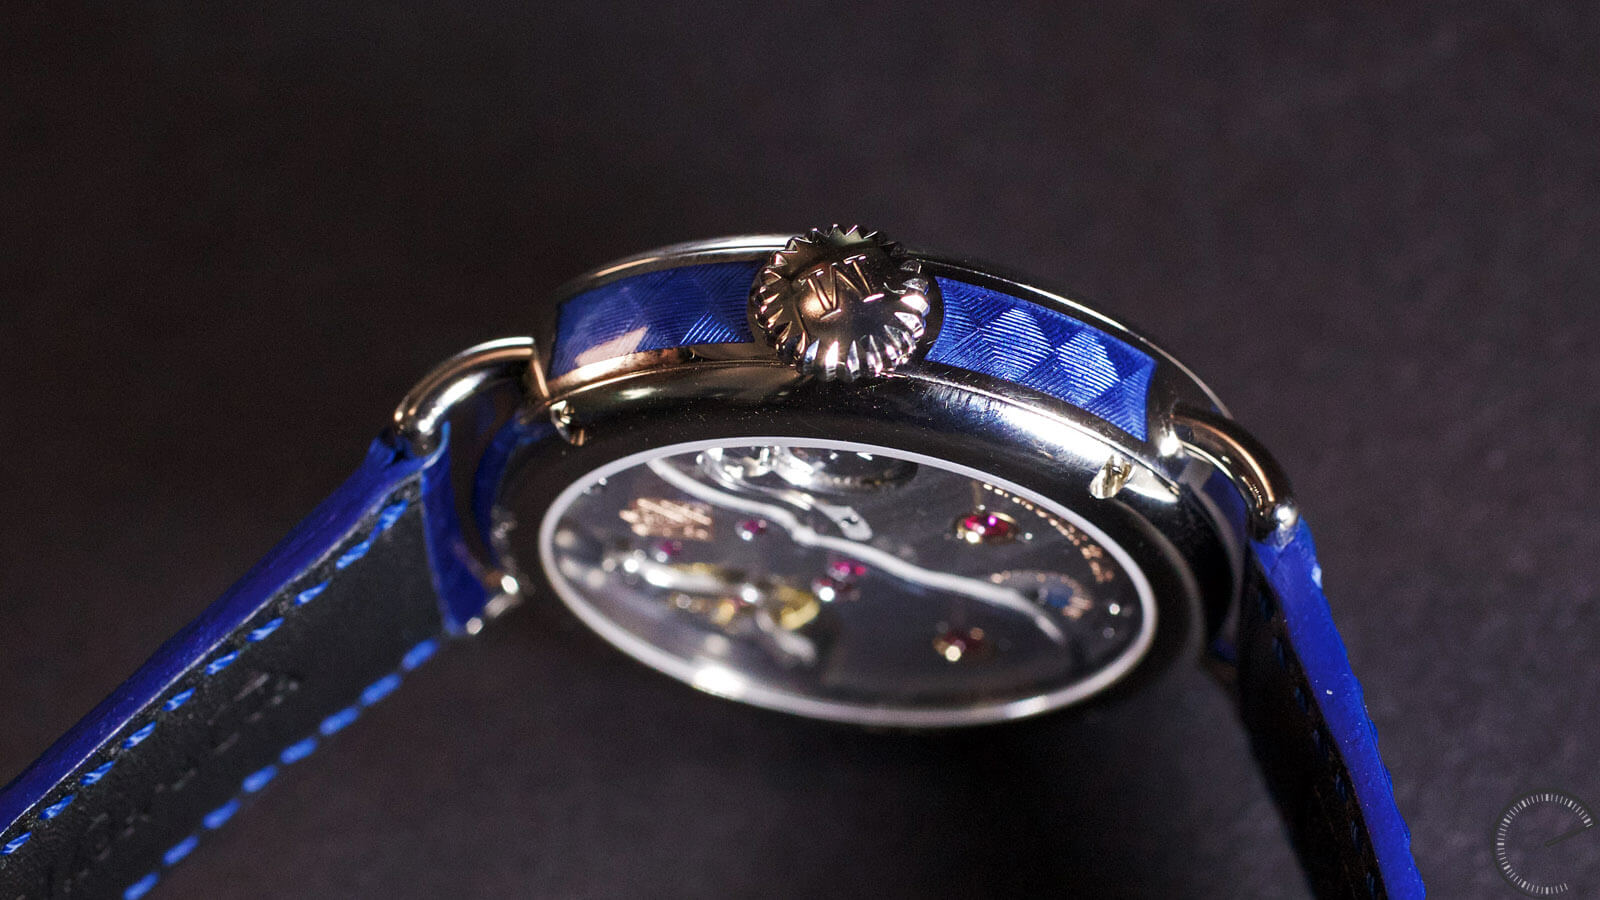 Image of H. Moser & Cie Heritage Perpetual Moon